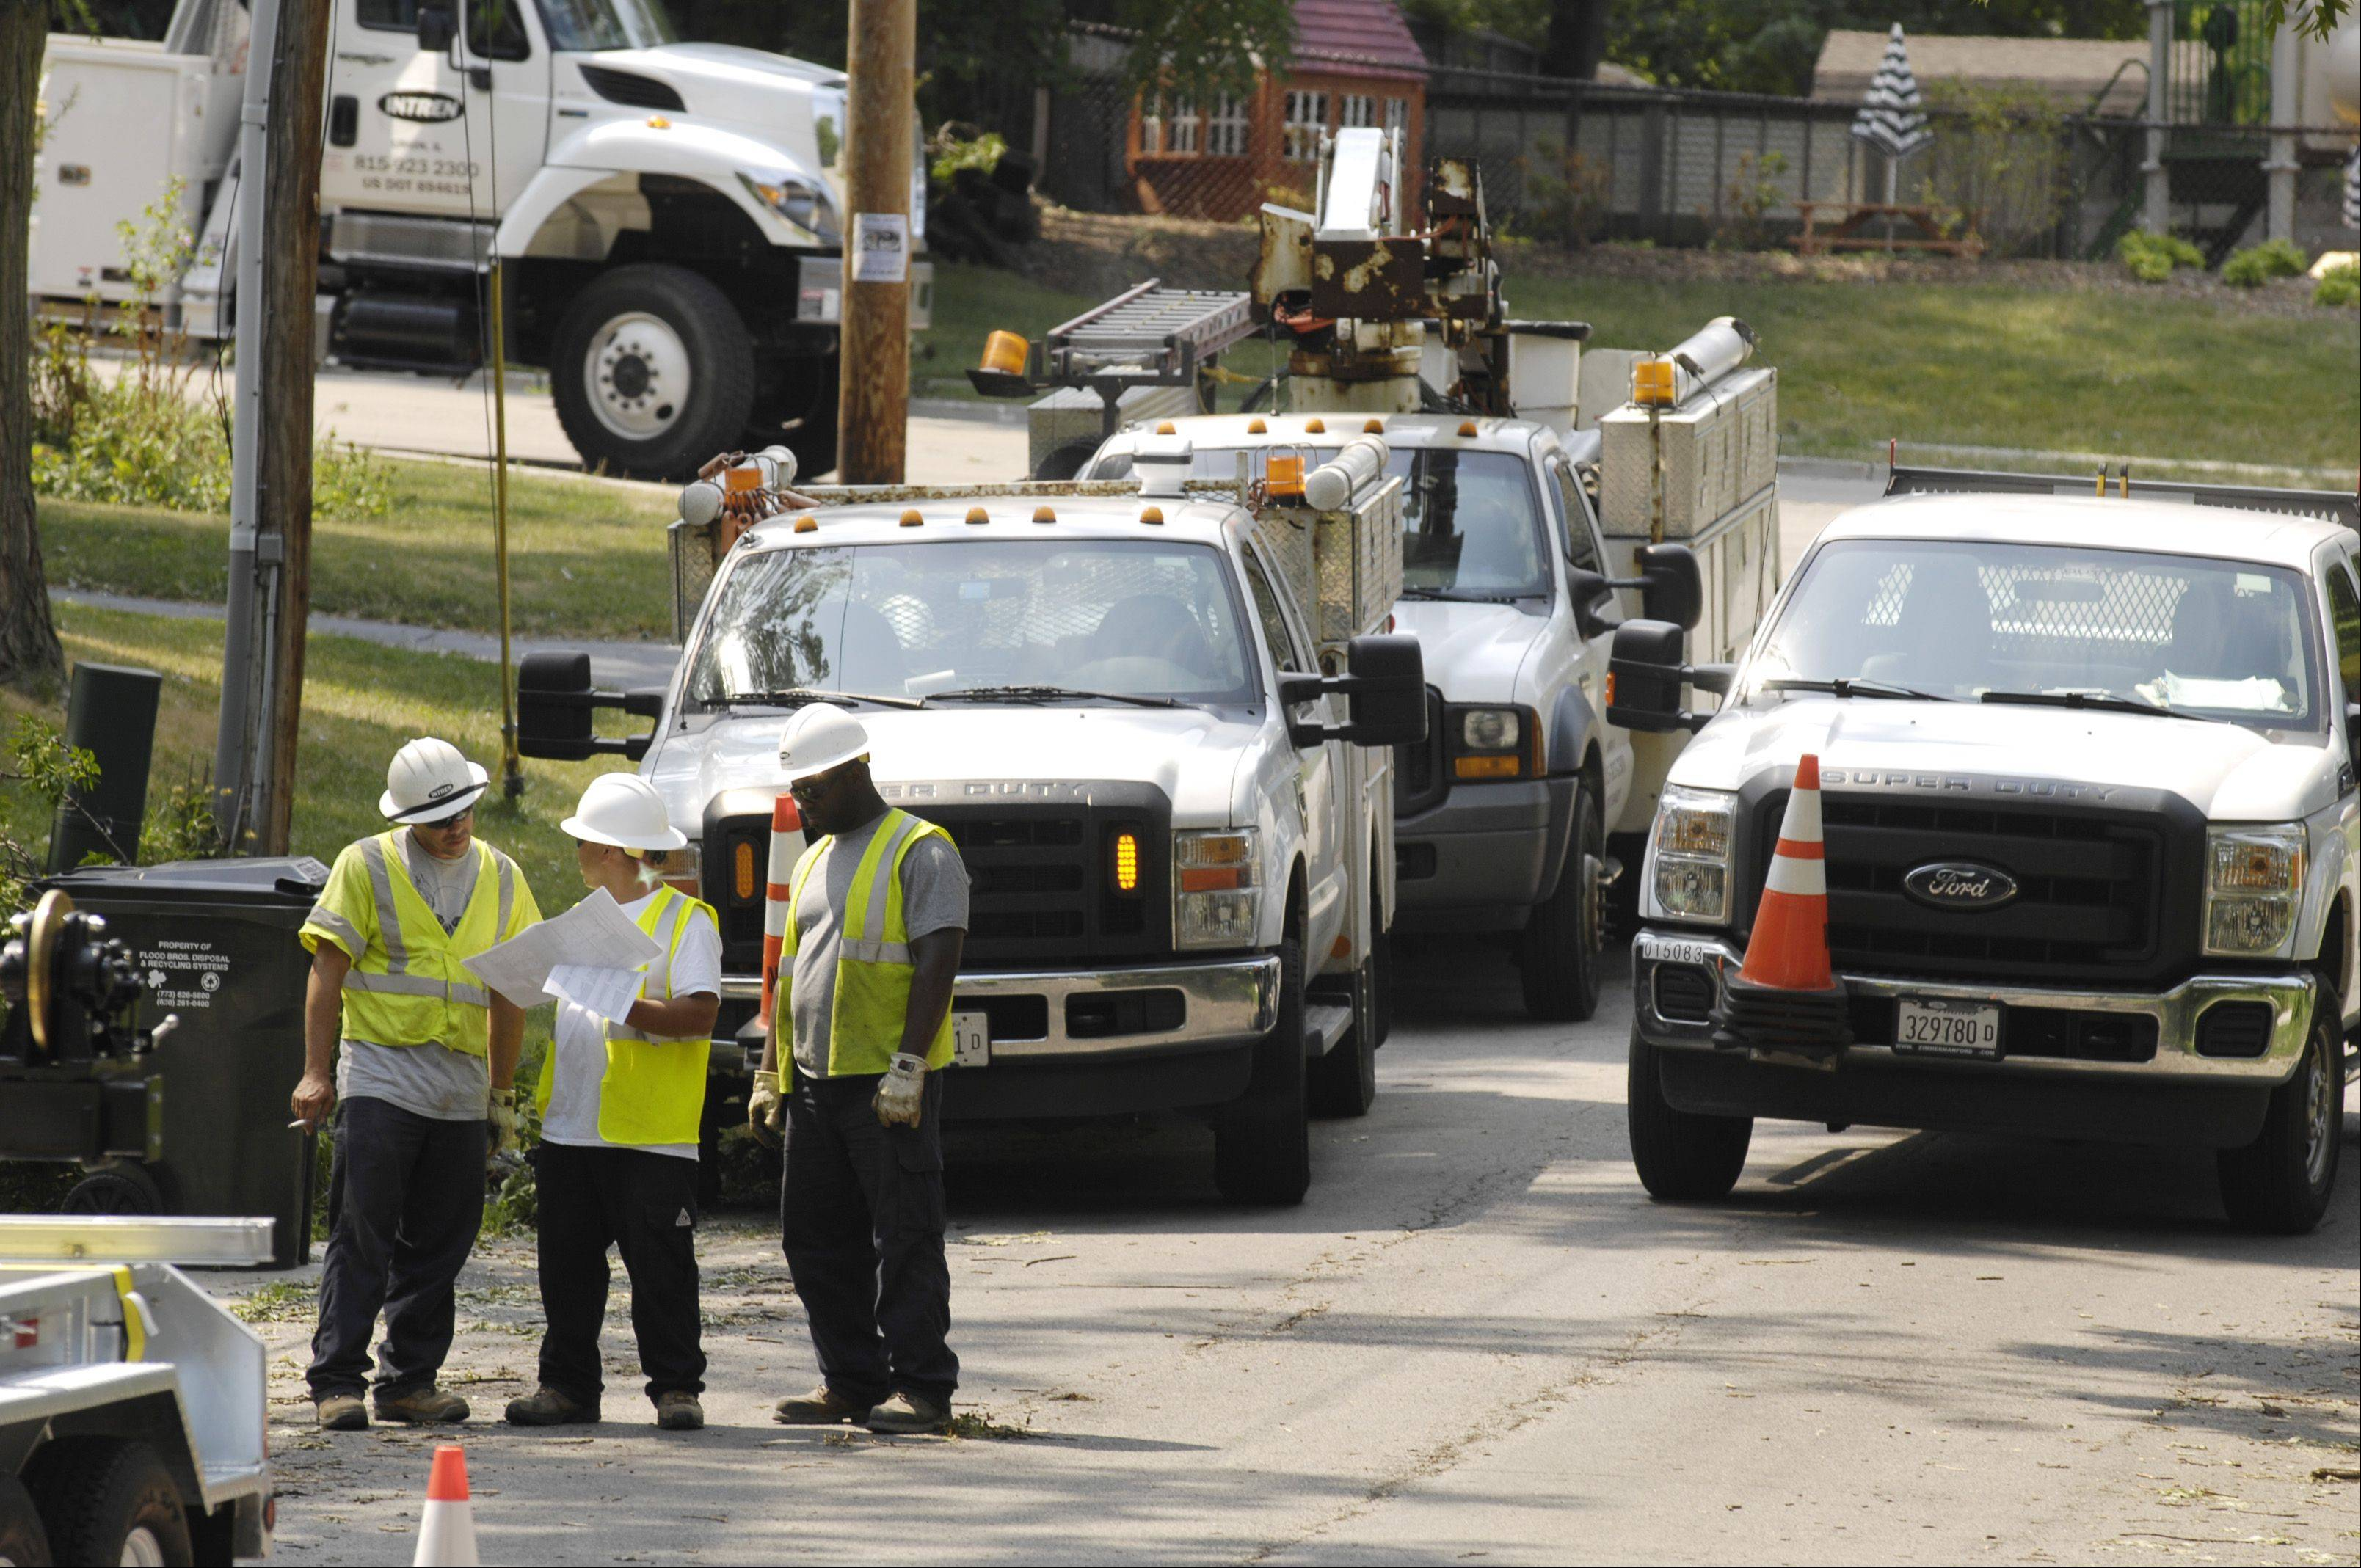 Utility crews work in Wheaton to restore services after a Sunday afternoon storm rolled through DuPage County knocking out power to tens of thousands.